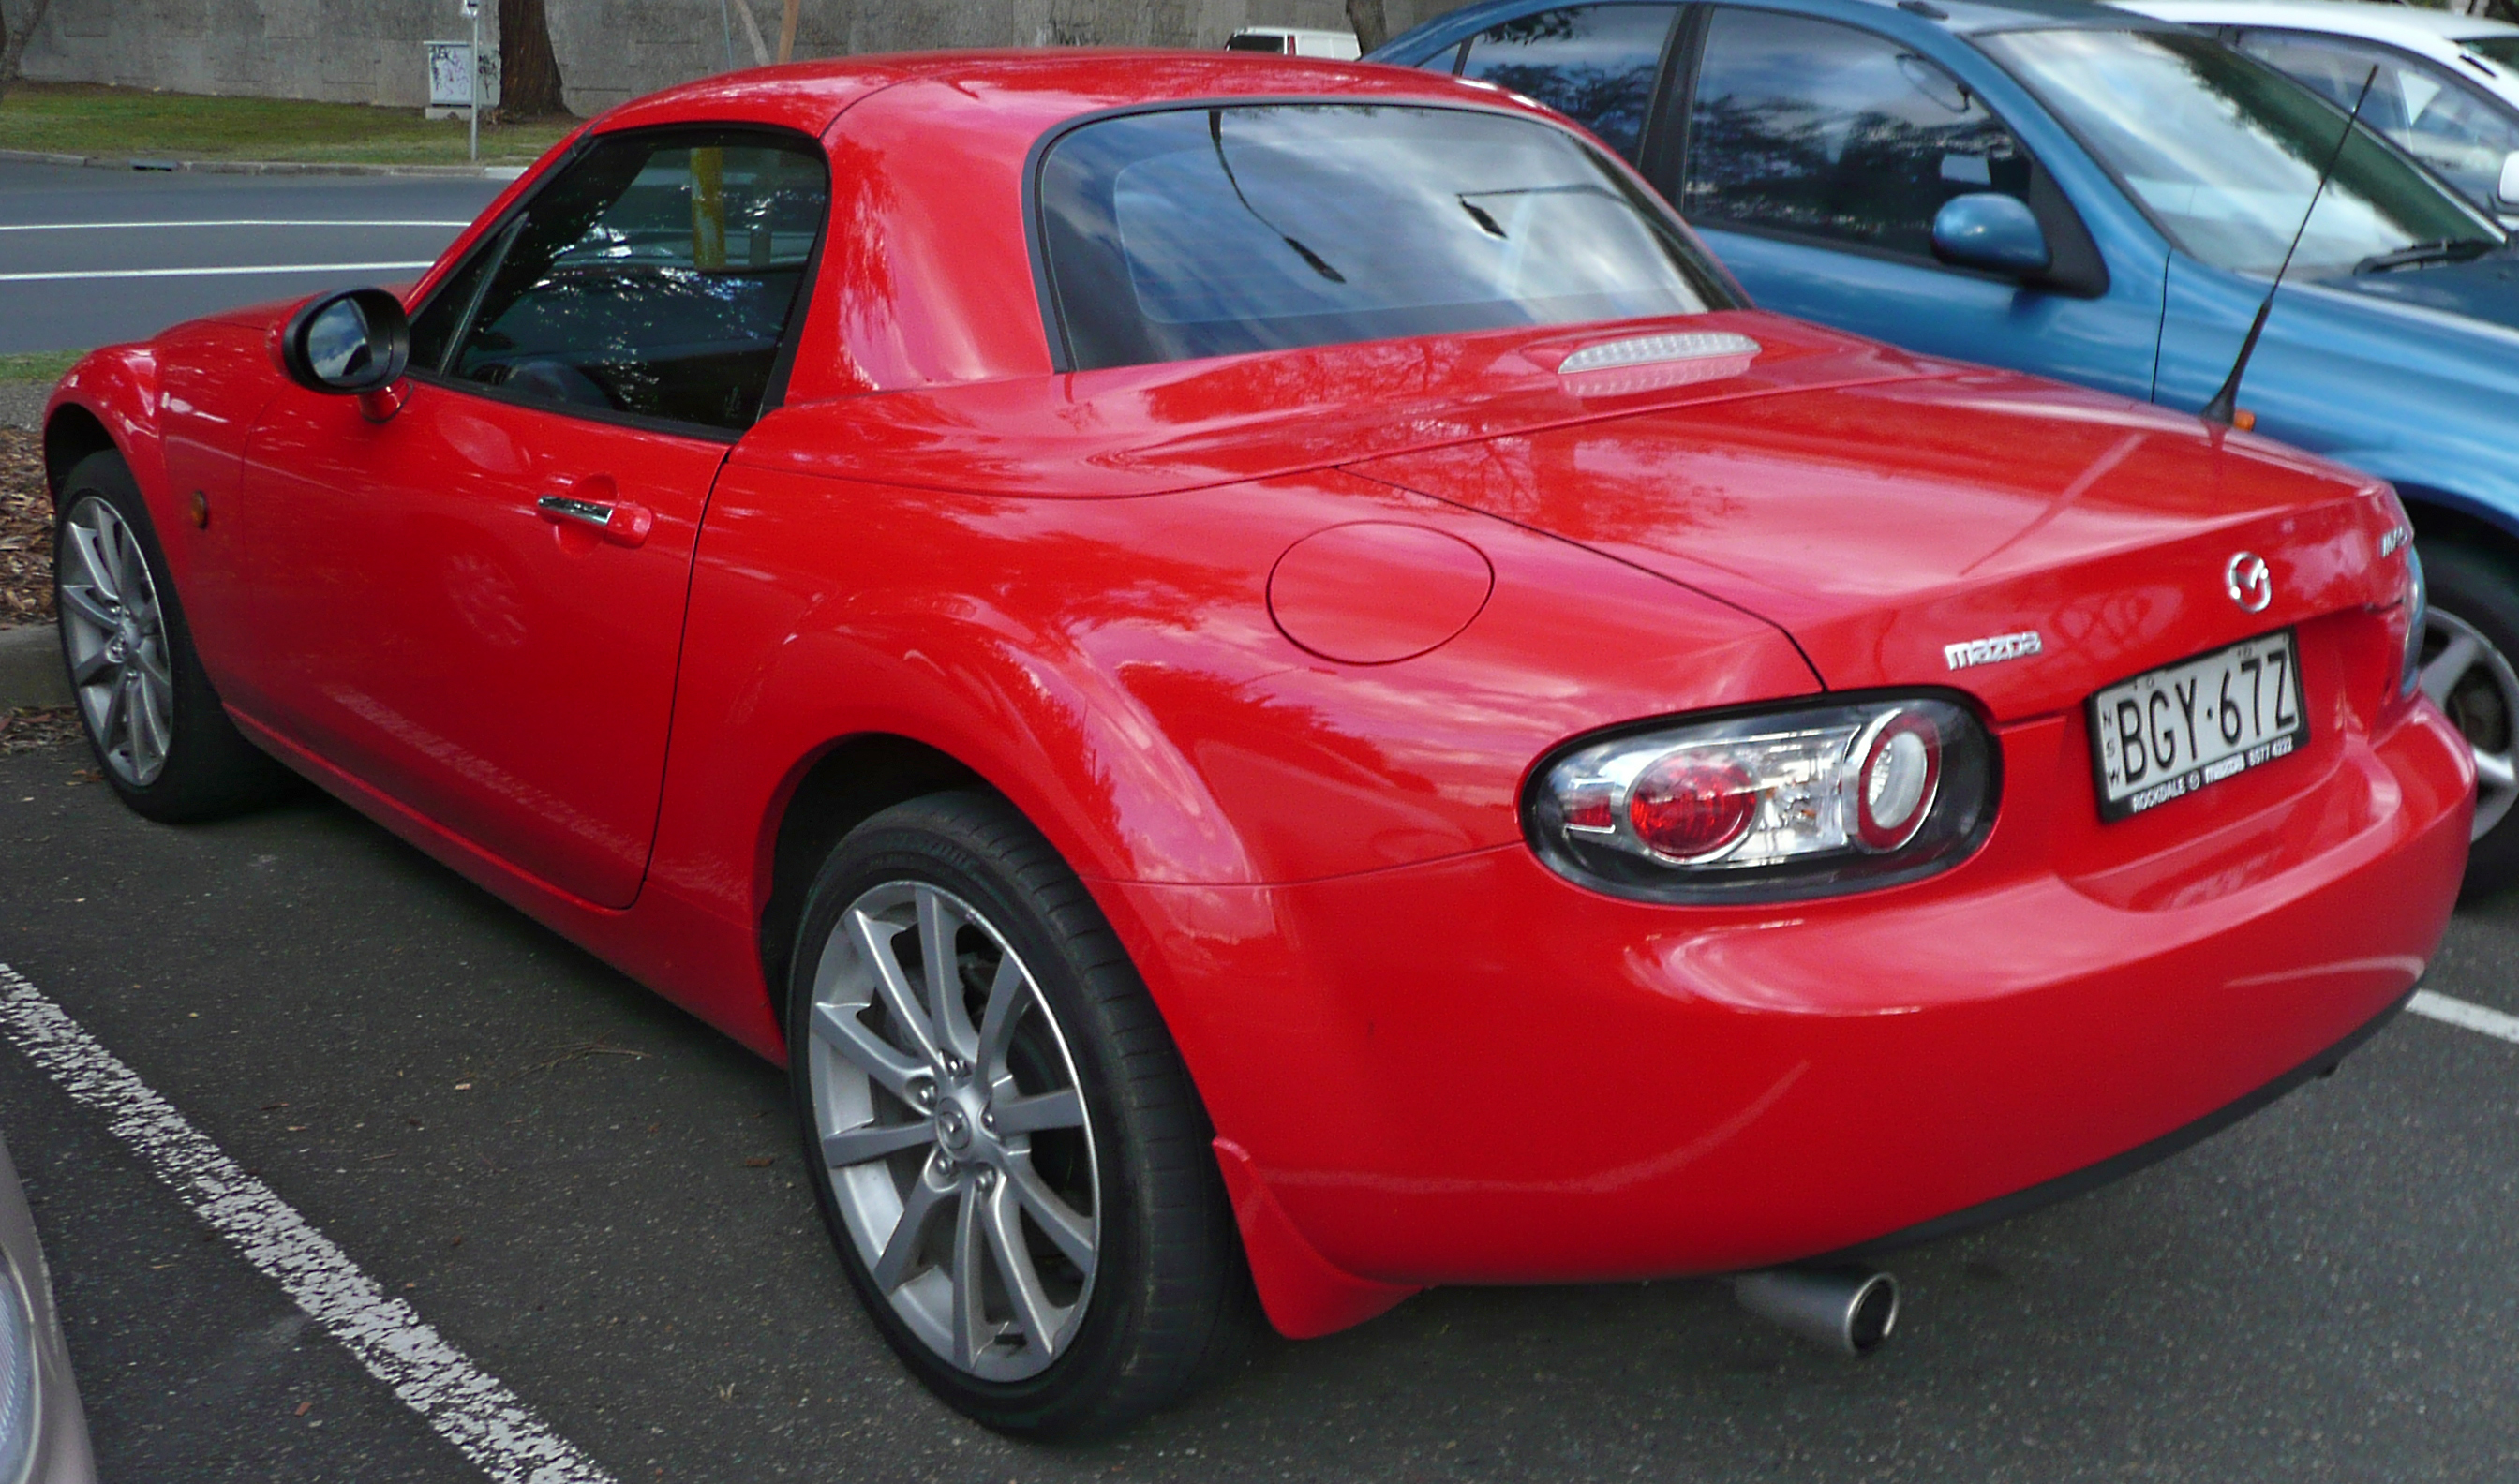 file 2005 2009 mazda mx 5 nc series 1 hardtop wikimedia commons. Black Bedroom Furniture Sets. Home Design Ideas